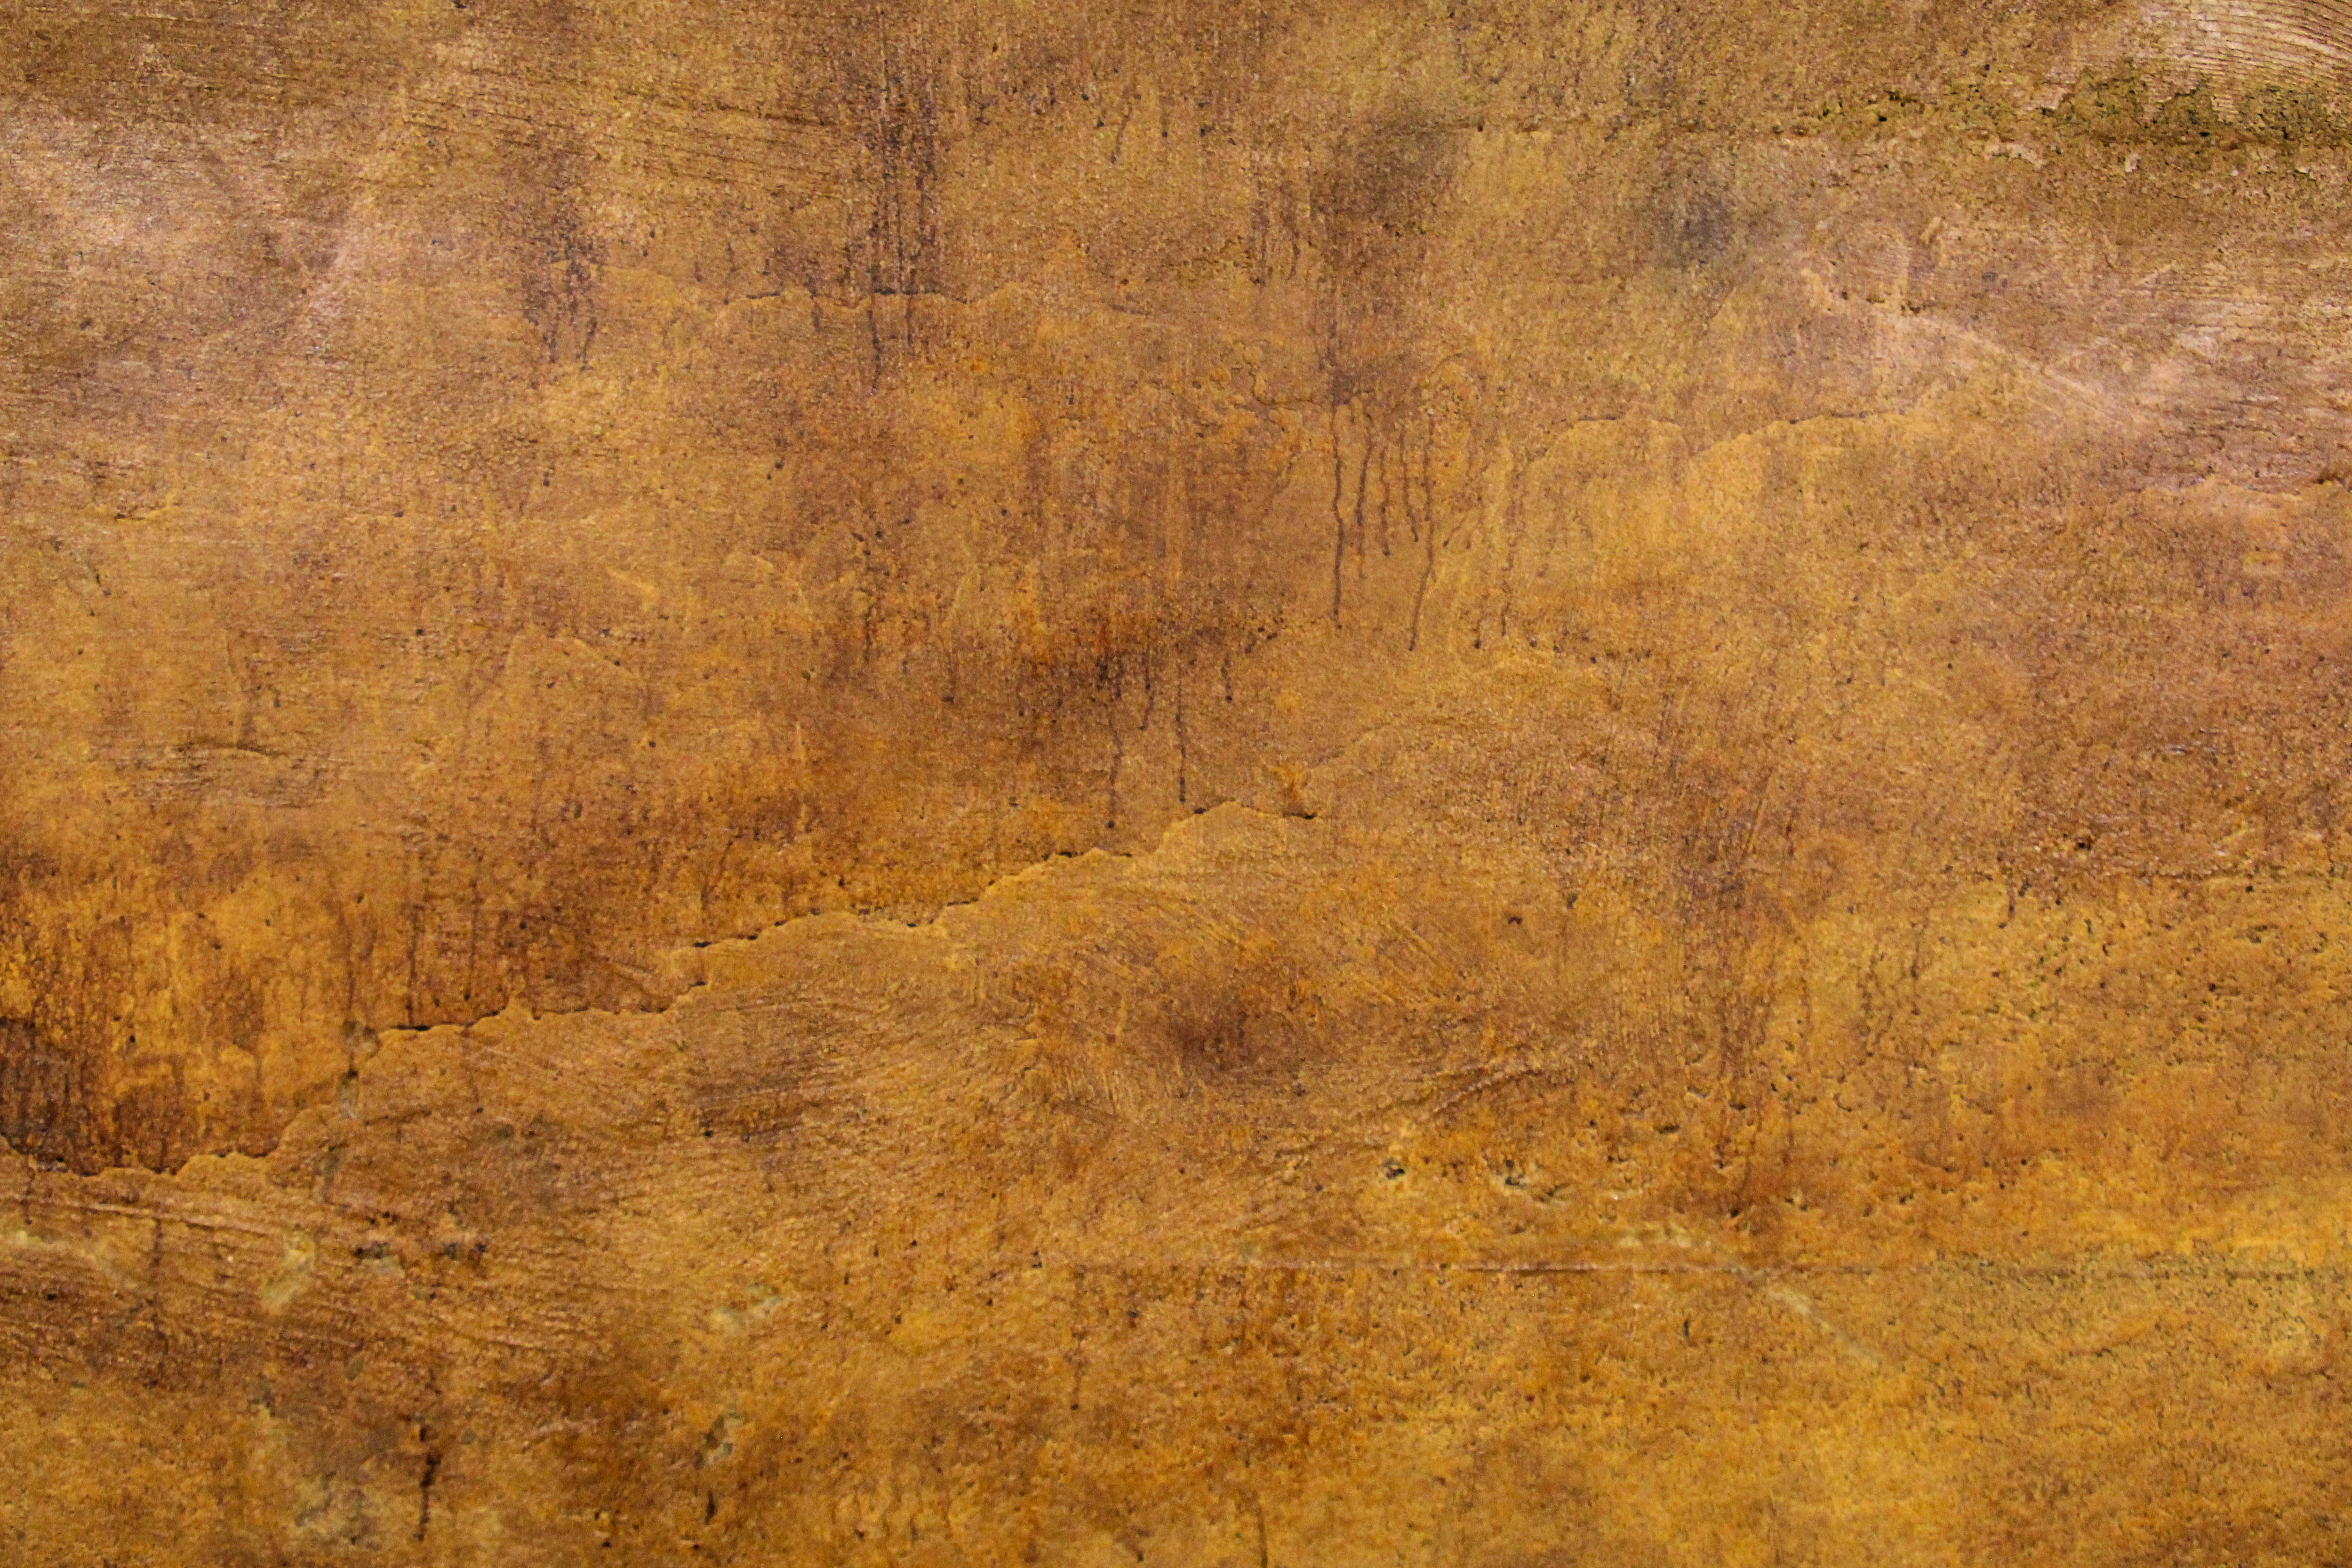 Grunge Texture Dripping Stained Concrete Wall Orange Brown